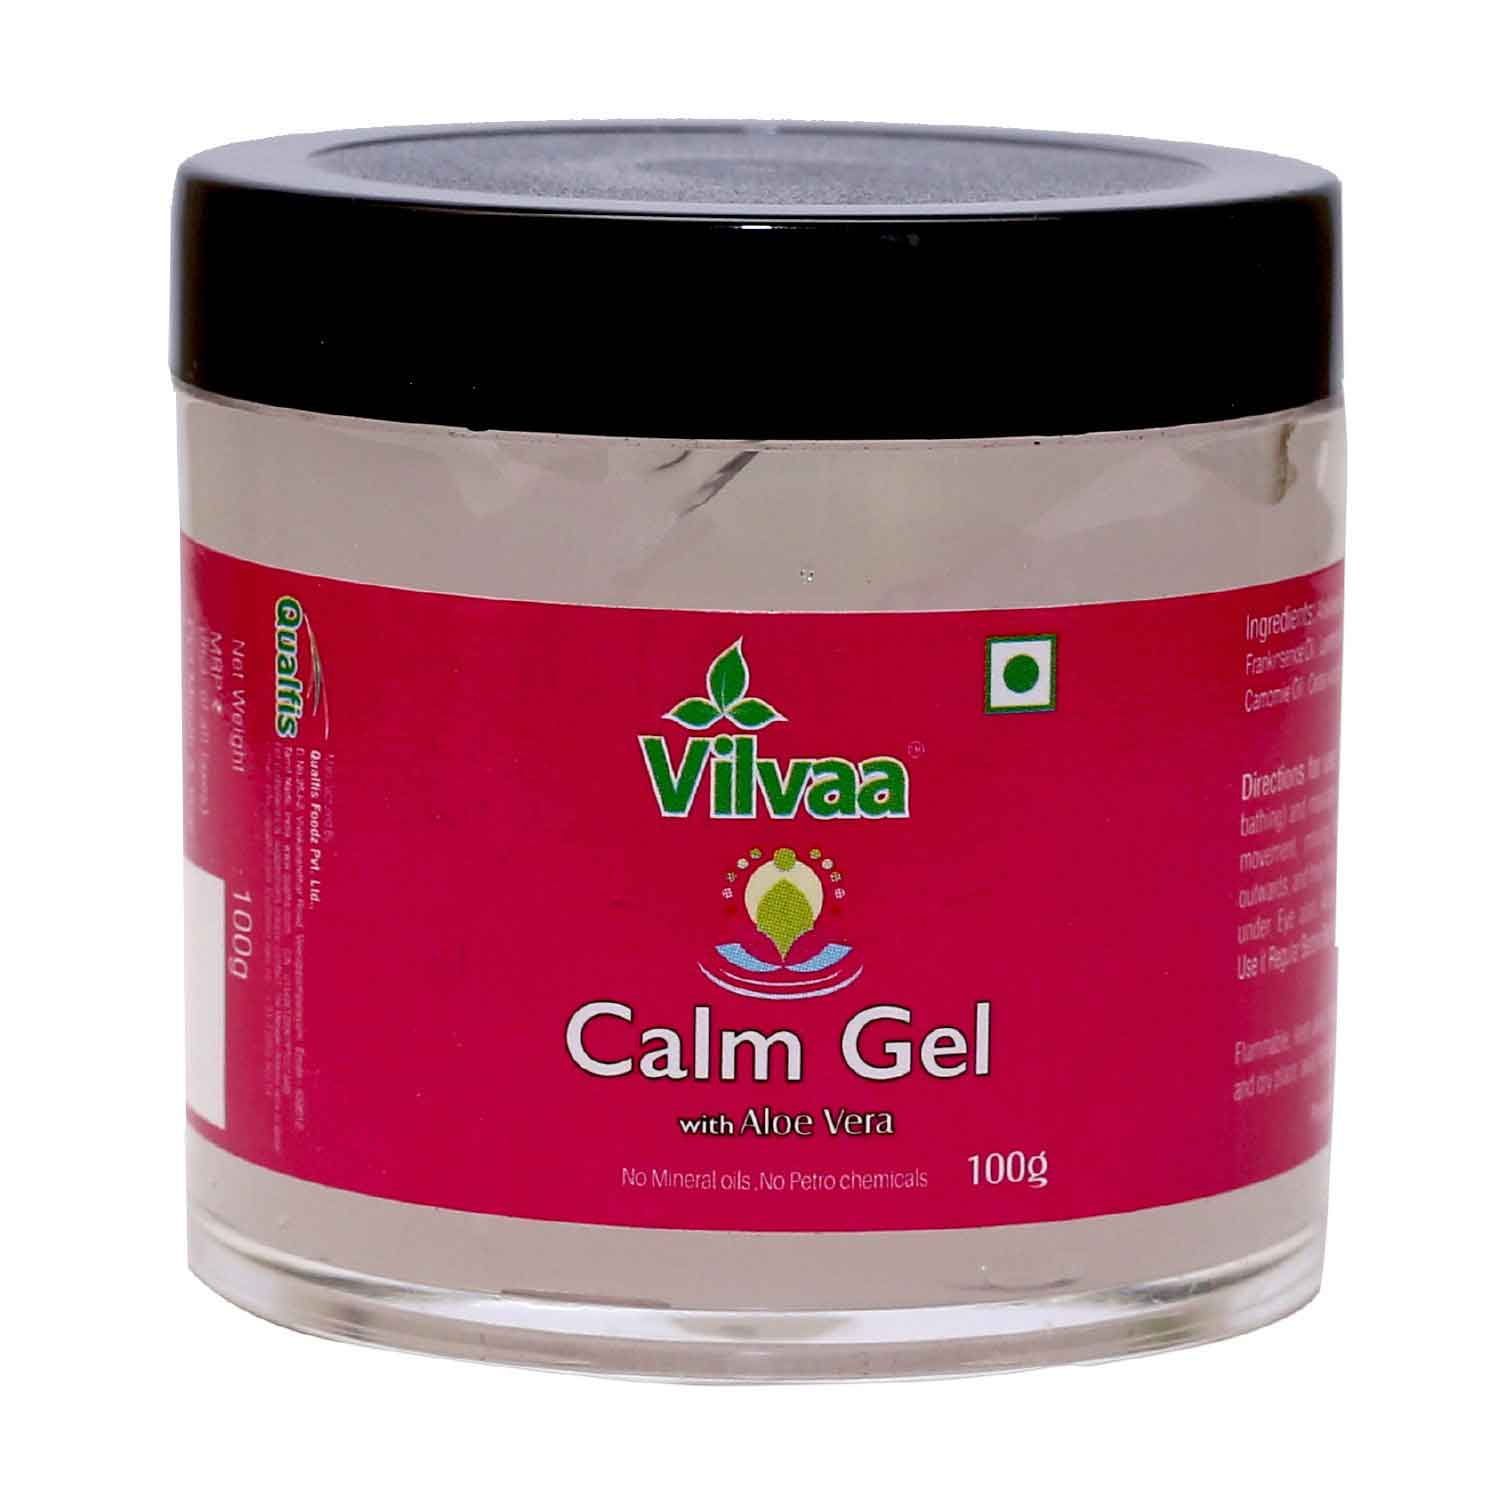 Calm Gel With Aloe Vera - 100g